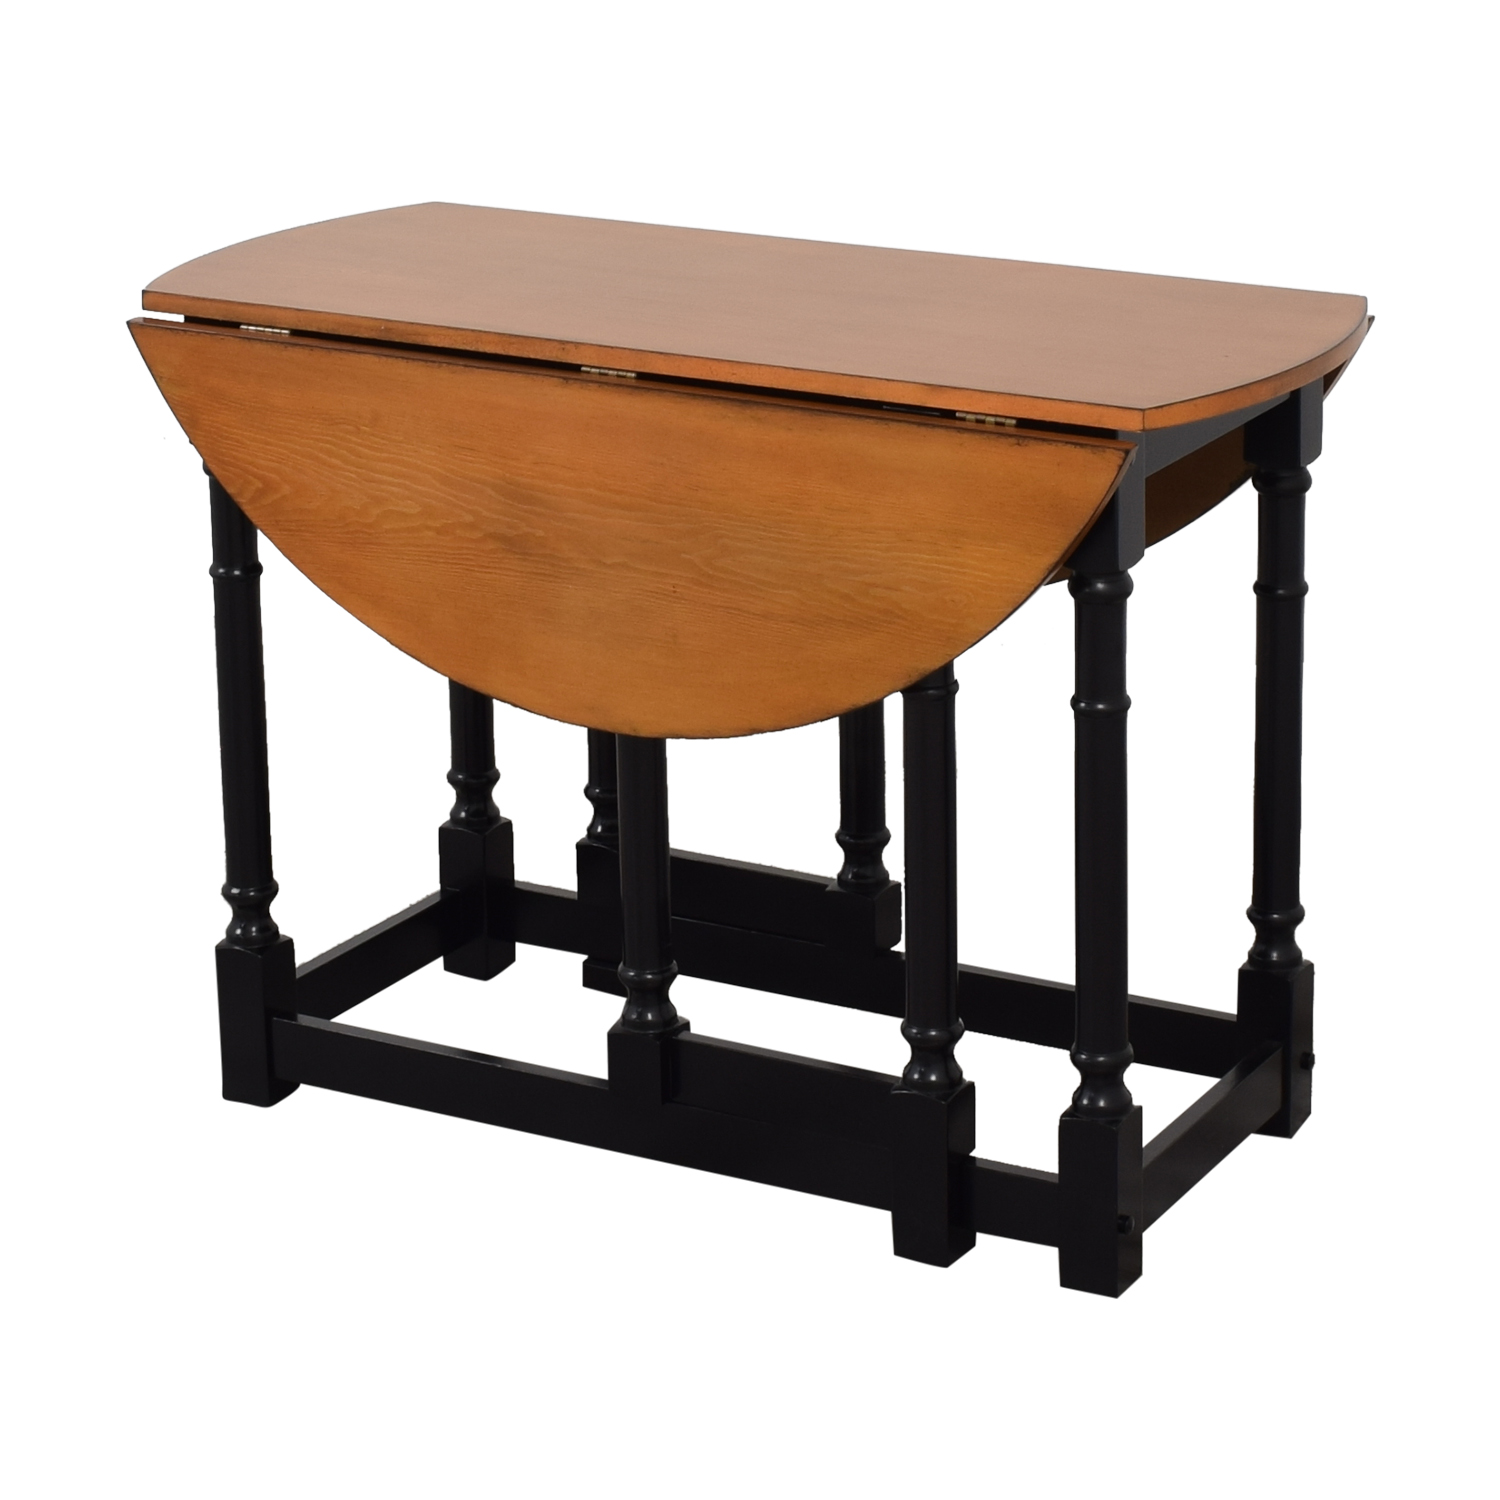 buy Accent Trend Accent Trend Solid Wood Gateleg Table online